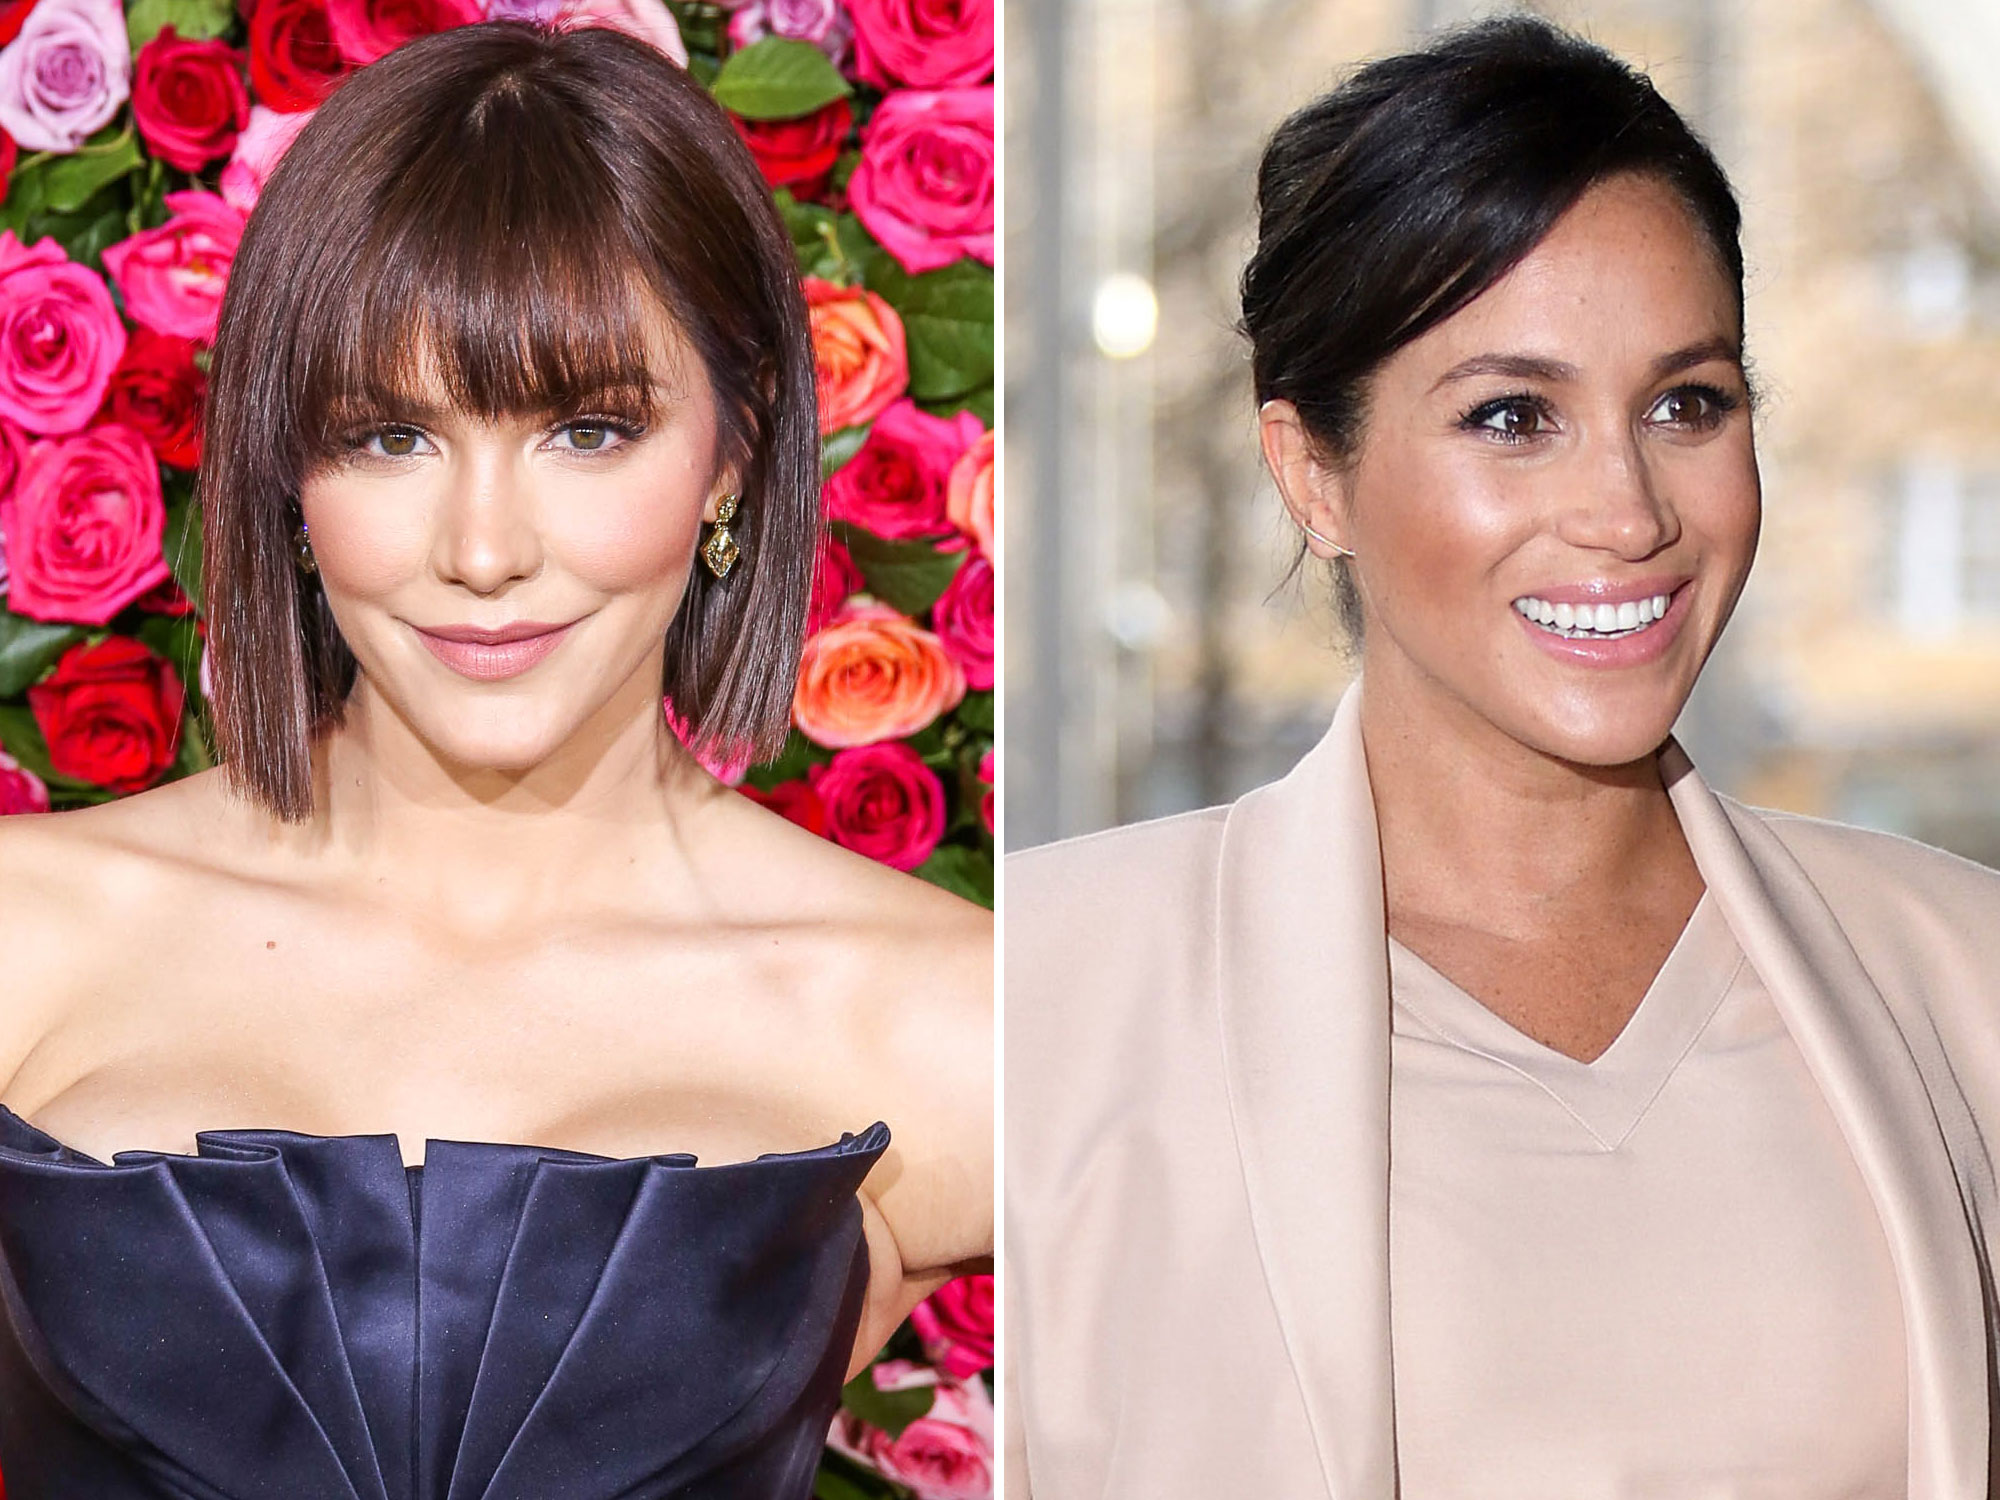 Meghan Markle Is Unrecognizable in This Throwback Photo with Katharine McPhee